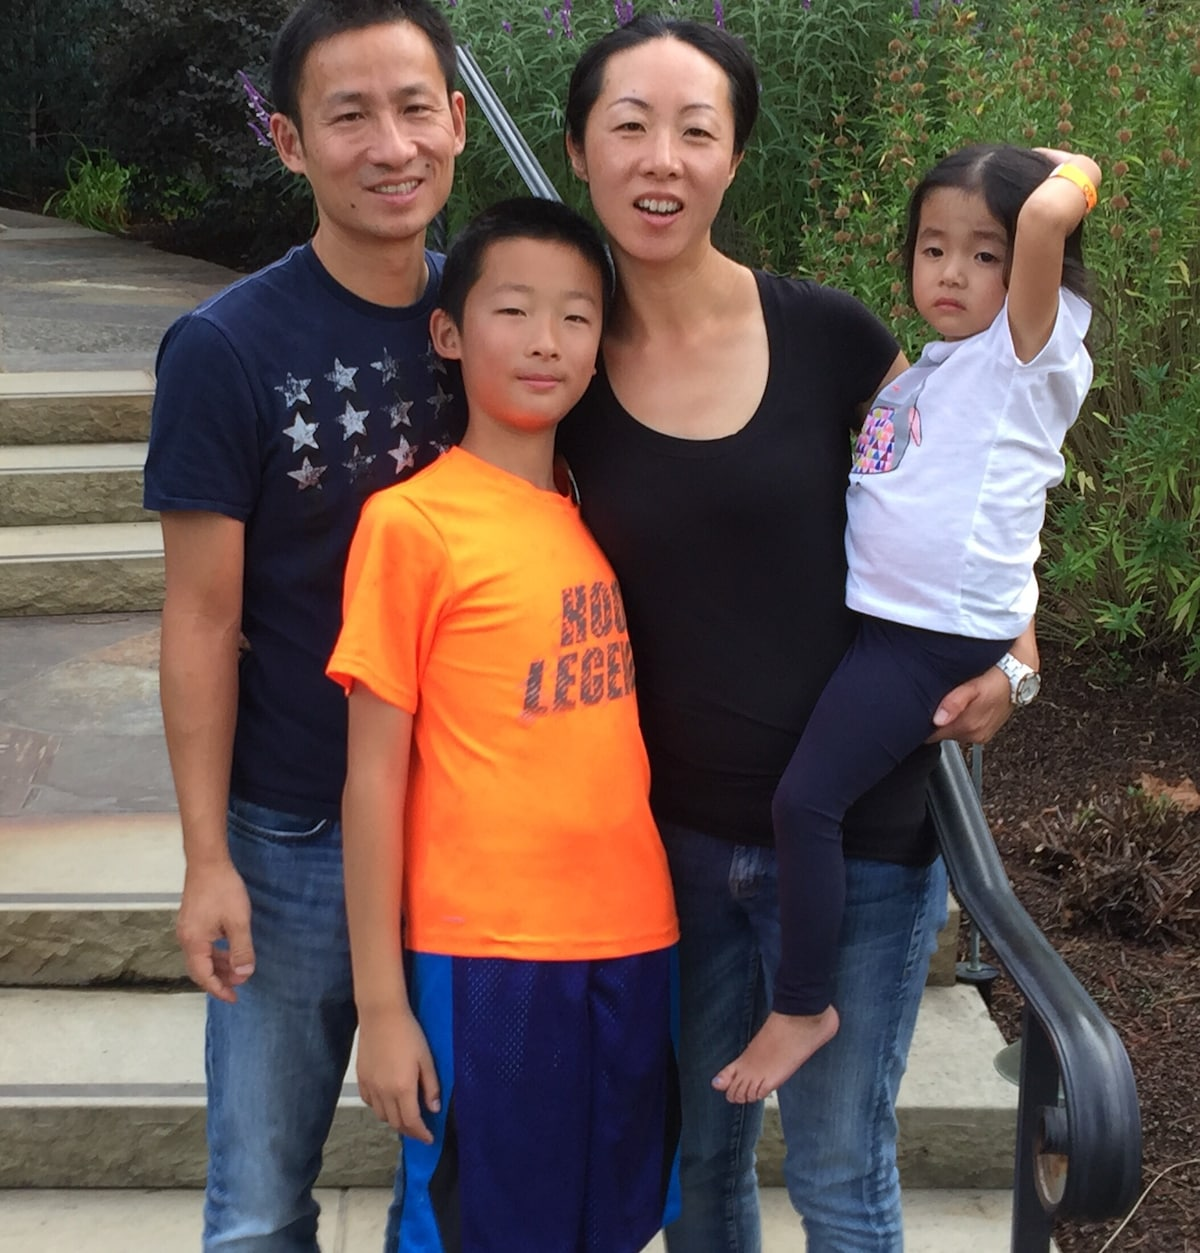 Cindy is a full-time mom, and Feng is an IT profes